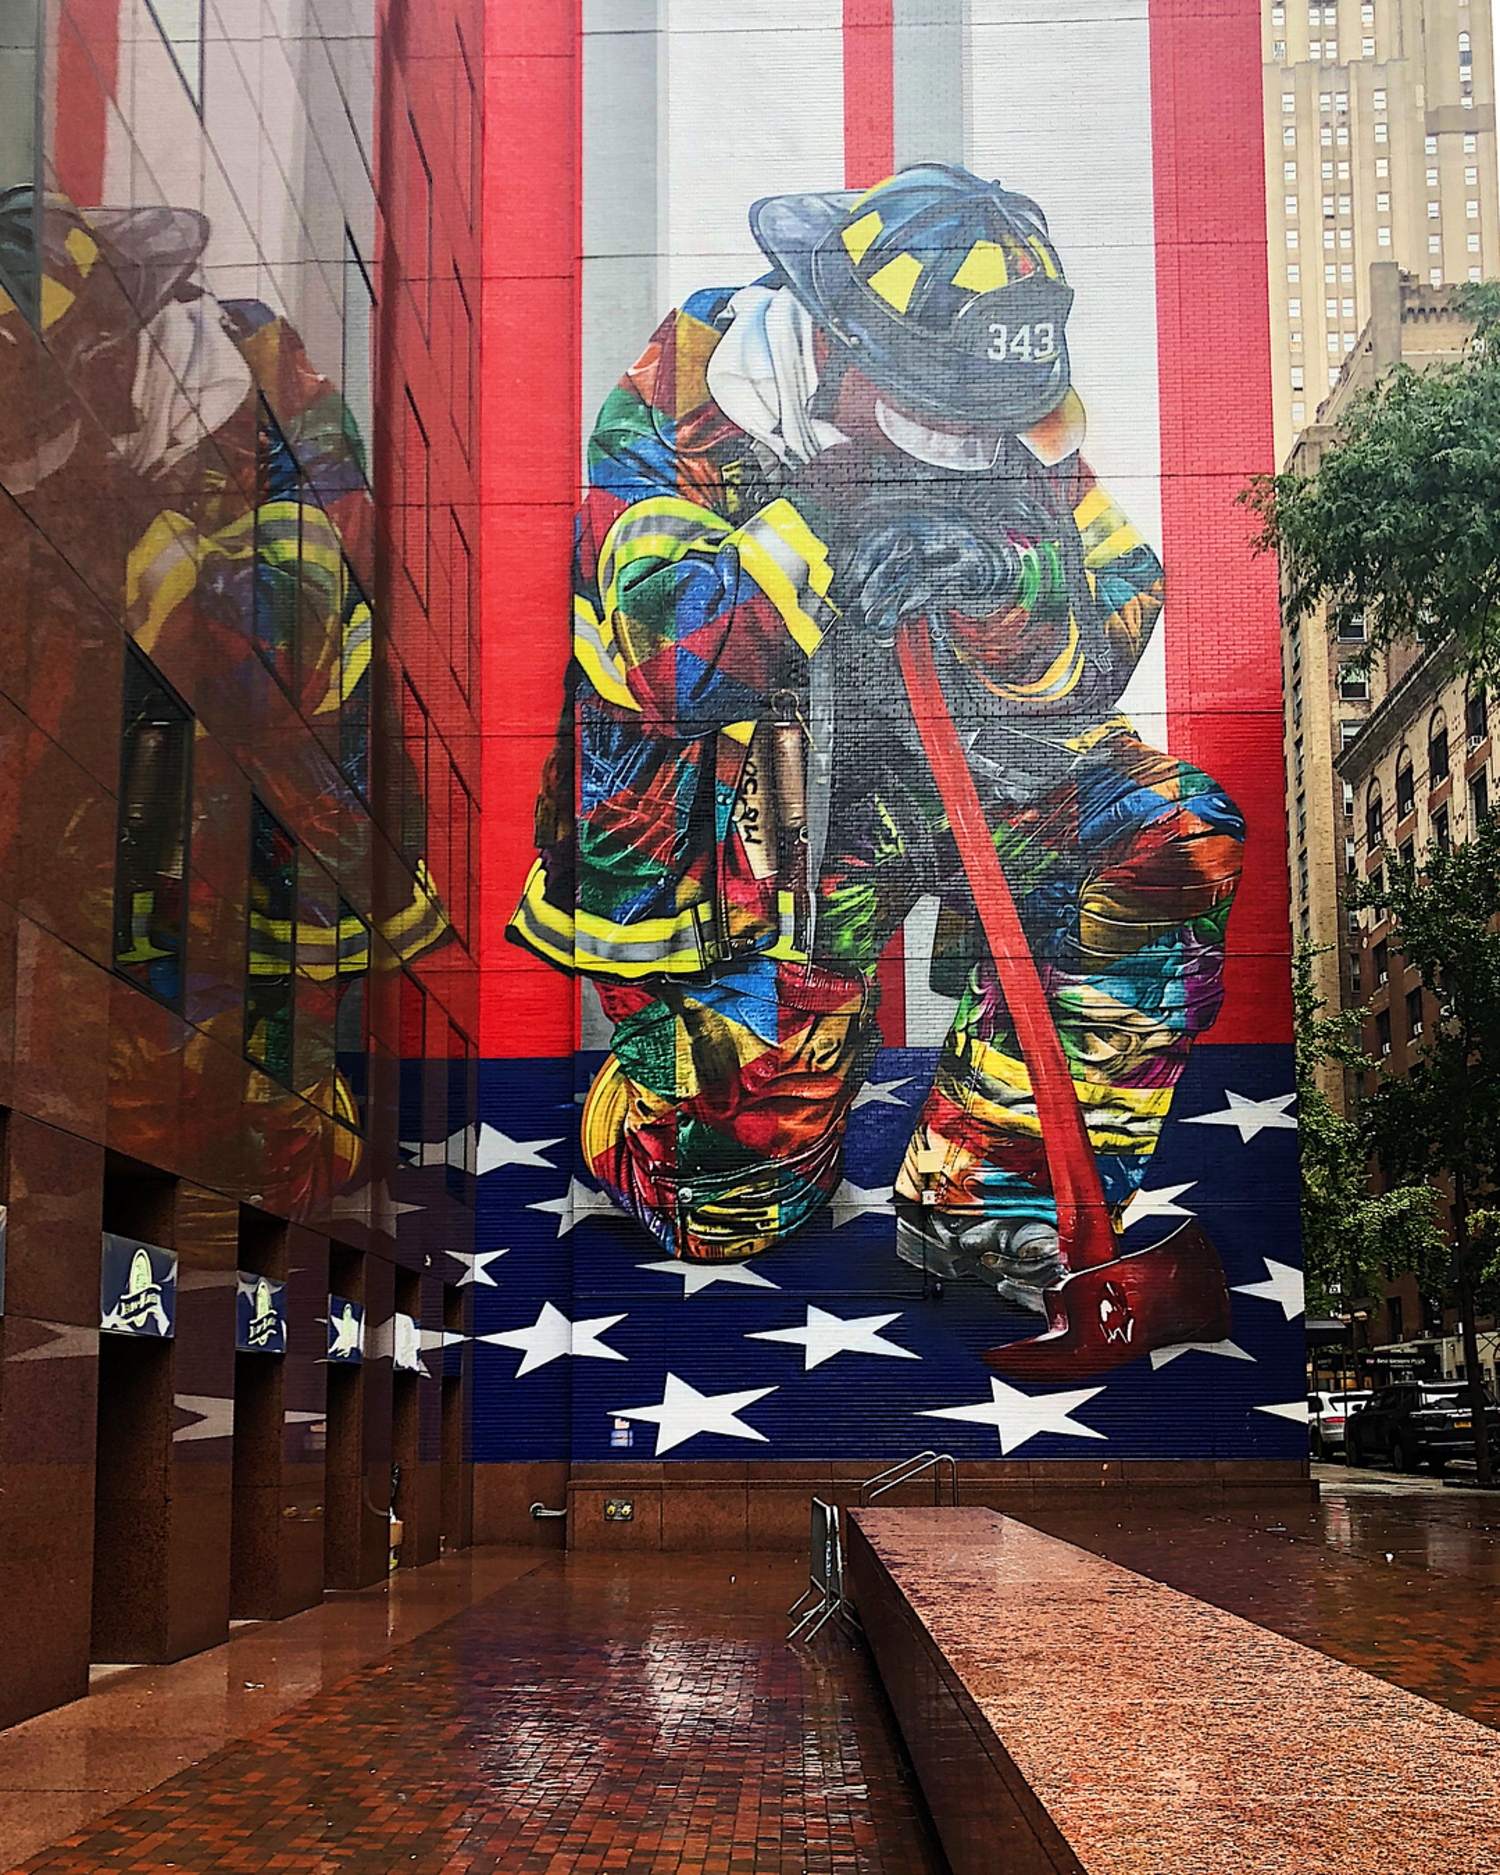 Reflection  The finished #mural of @kobrastreetart 's rendition of the iconic 9/11 photograph w/ New York's Bravest! @fdny👩🏻‍🚒👨🏻‍🚒 Swipe 👉🏻for another 📸 ❤️🧡💛 🇺🇸 💚💙💜 ... #stars #stripes  #iconic #911 #fdny #color #wallporn #art #artist #muralart #eduardokobra #urbanart #reflection #streetart #ny #newyork #nyc #newyorkcity #bigapple #manhattan #ILoveNY #ilovenyc  #seeyourcity  #graffitiart #justgoshoot #ignyc #muralsofnyc #manhattanstreetart #justgoshoot